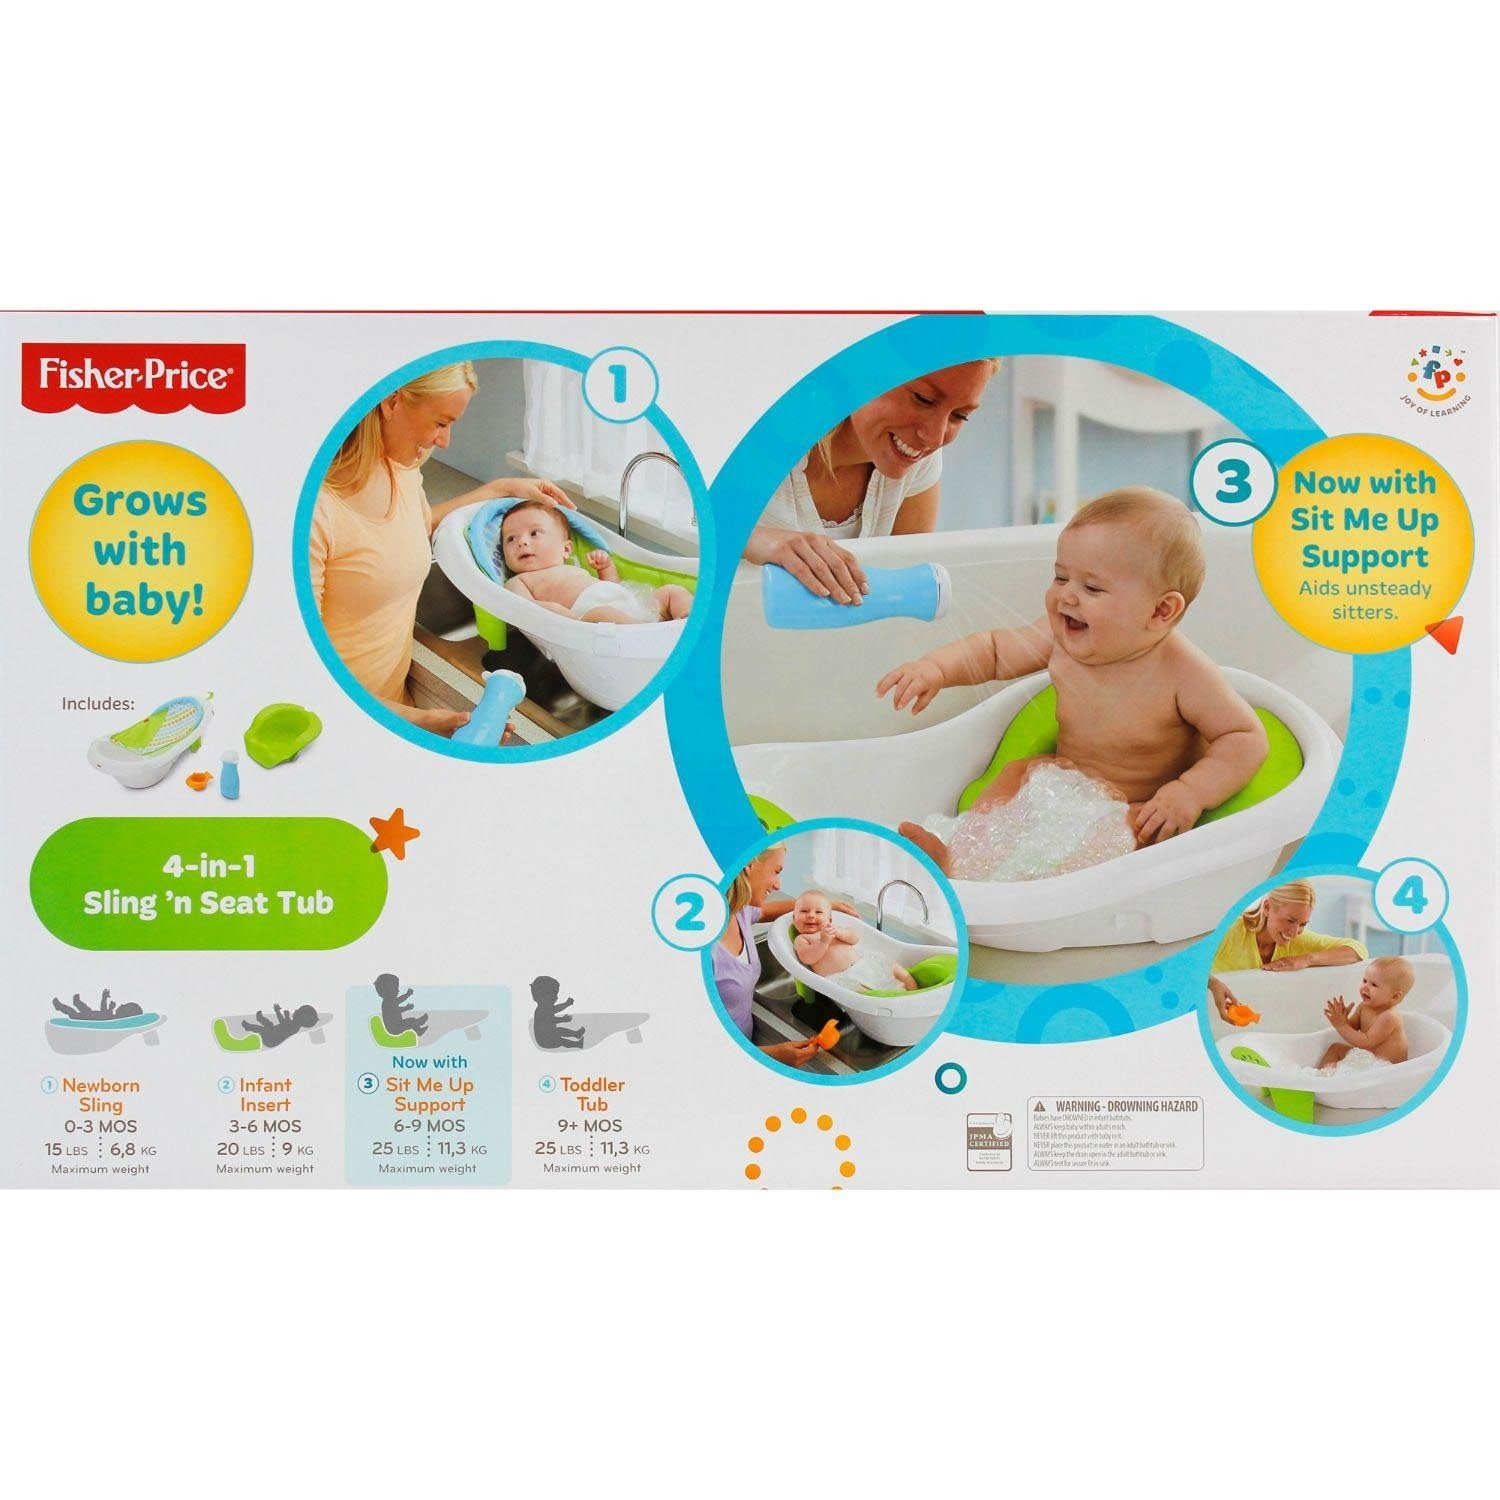 e208fad3705 Shop Fisher-Price 4-in-1 Sling  n Seat Tub - Free Shipping On Orders Over   45 - Overstock - 12360578